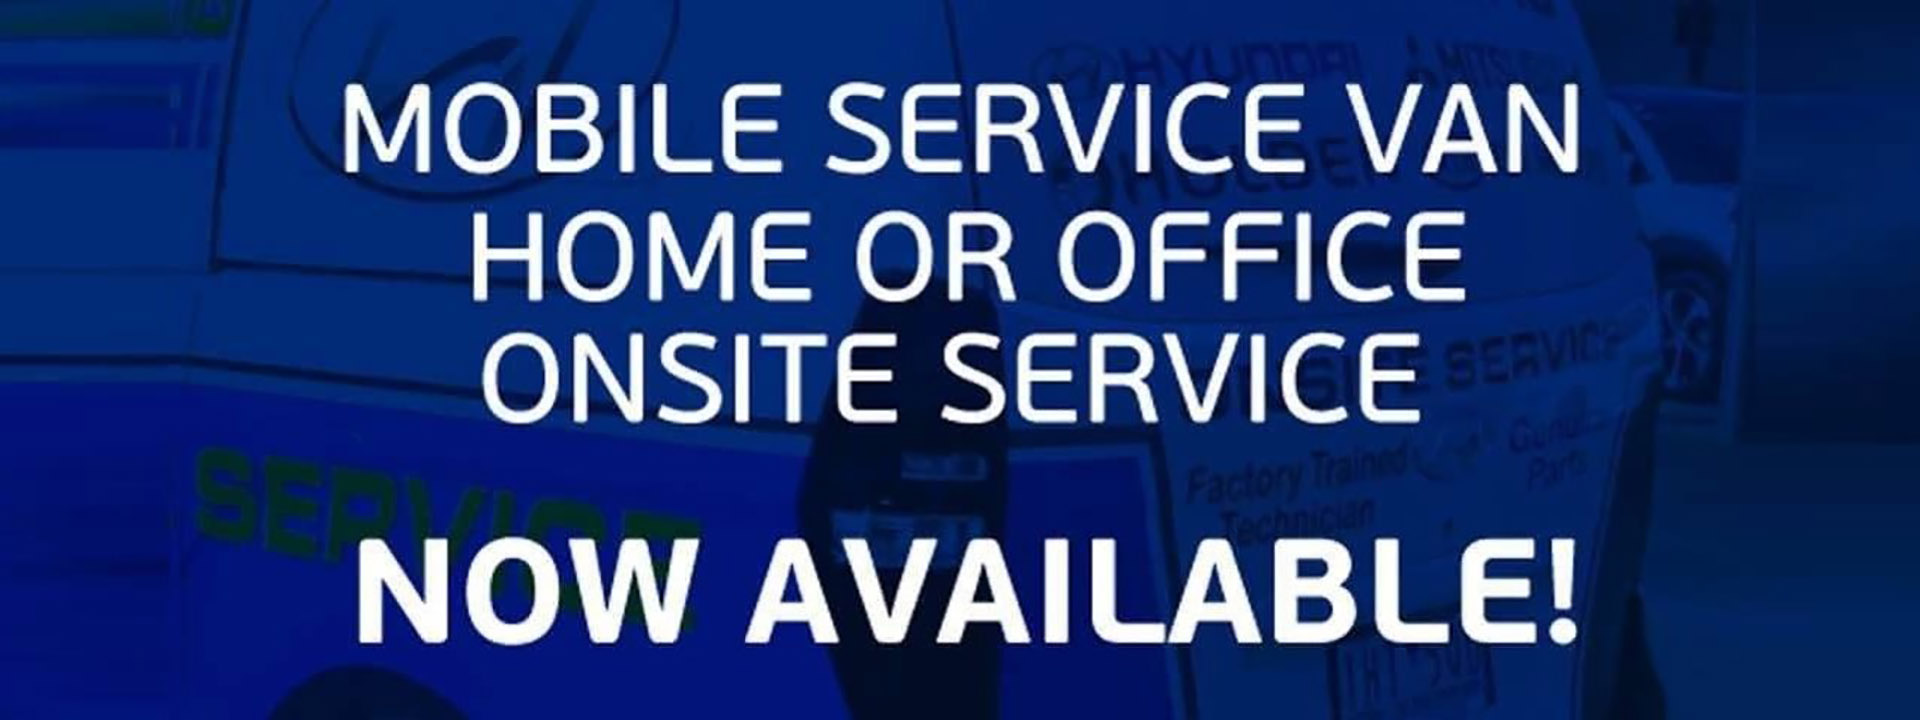 Onsite Mobile Service